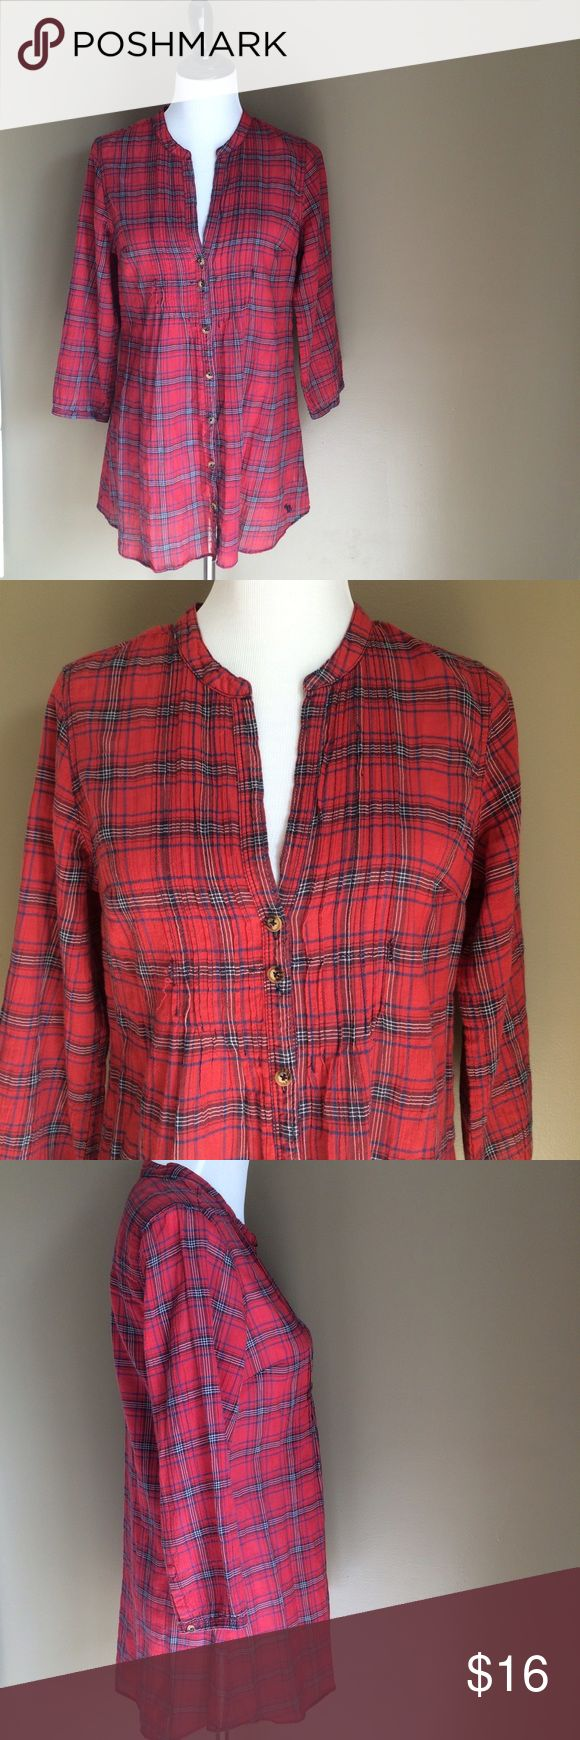 "Abercrombie & Fitch red plaid tunic For sale is a fun Fall red plaid tunic.  Pair this with leggings and boots and you are ready to go!  Nice and lightweight.  Buttons down entire front and on wrists.  Made of 99% cotton 1% elastane.  Measures 19.5"" armpit to armpit and 30"" length.  Great Preowned condition other than slight fraying on front.  Open to offers!  Thanks for looking! Abercrombie & Fitch Tops Tunics"